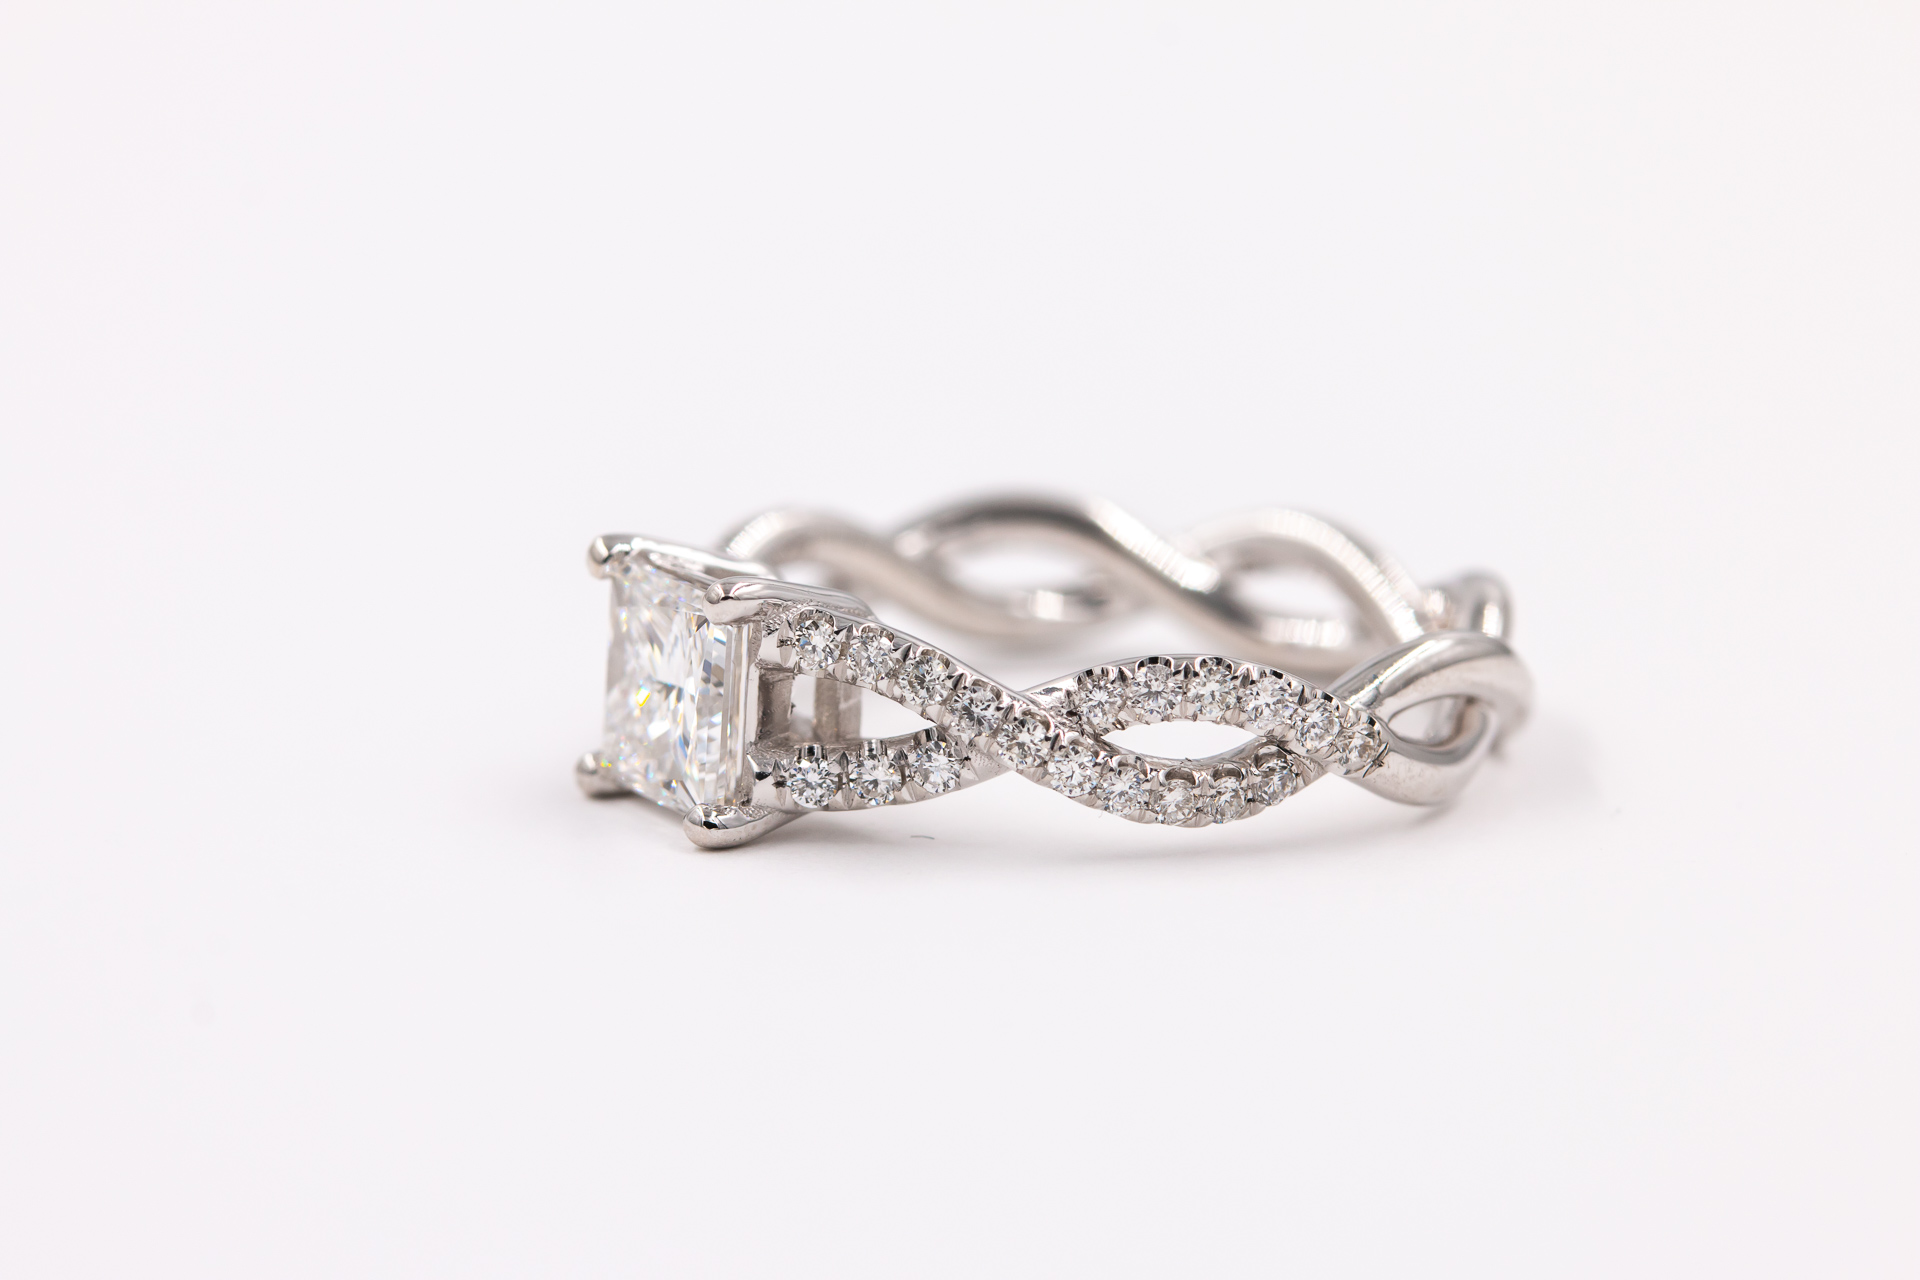 braided-band-engagement-ring